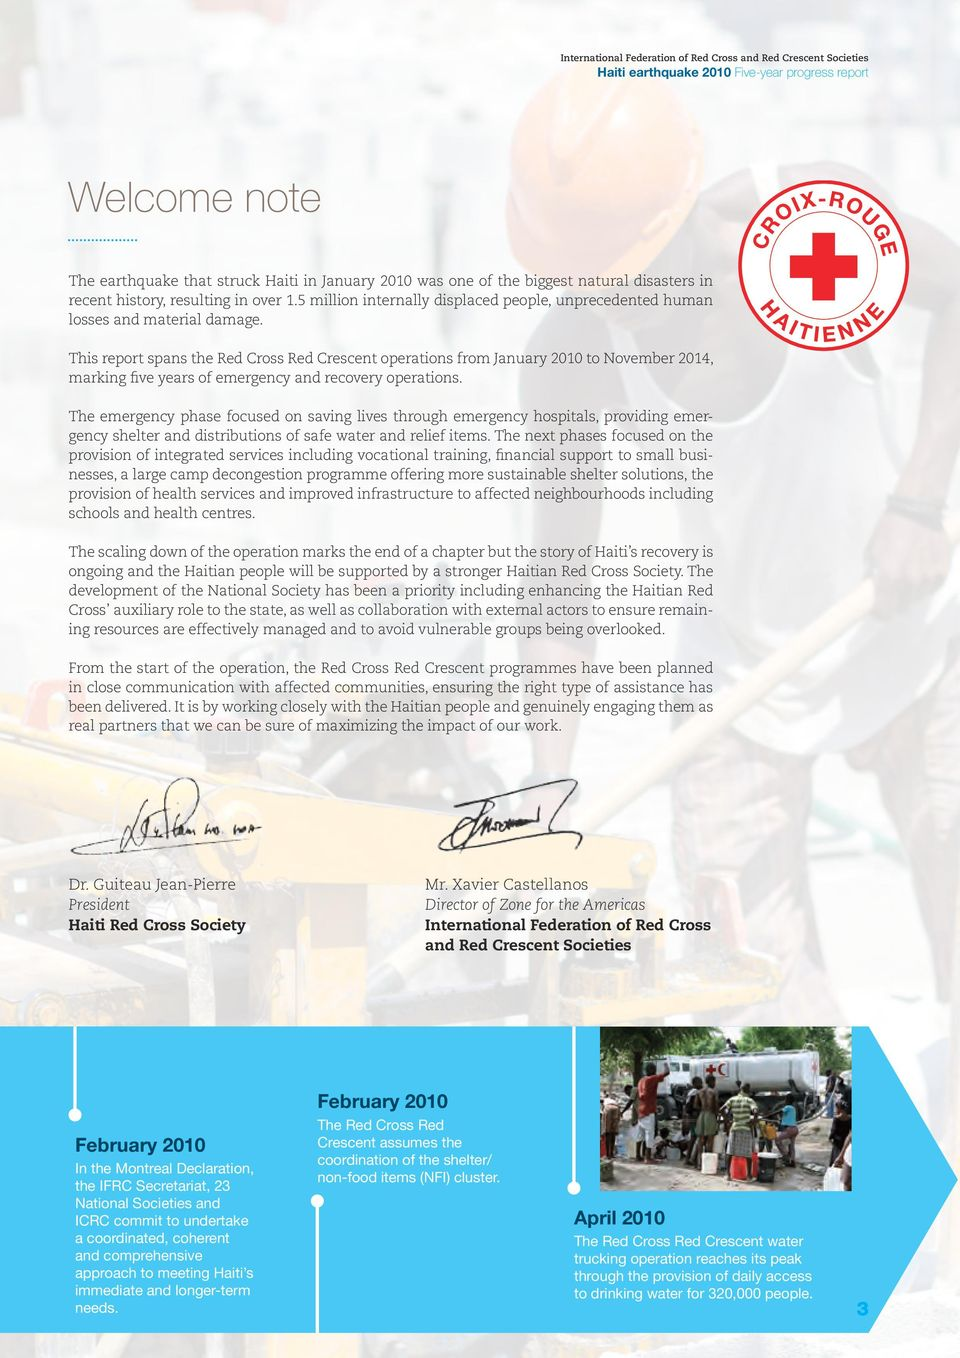 This report spans the Red Cross Red Crescent operations from January 2010 to November 2014, marking five years of emergency and recovery operations.